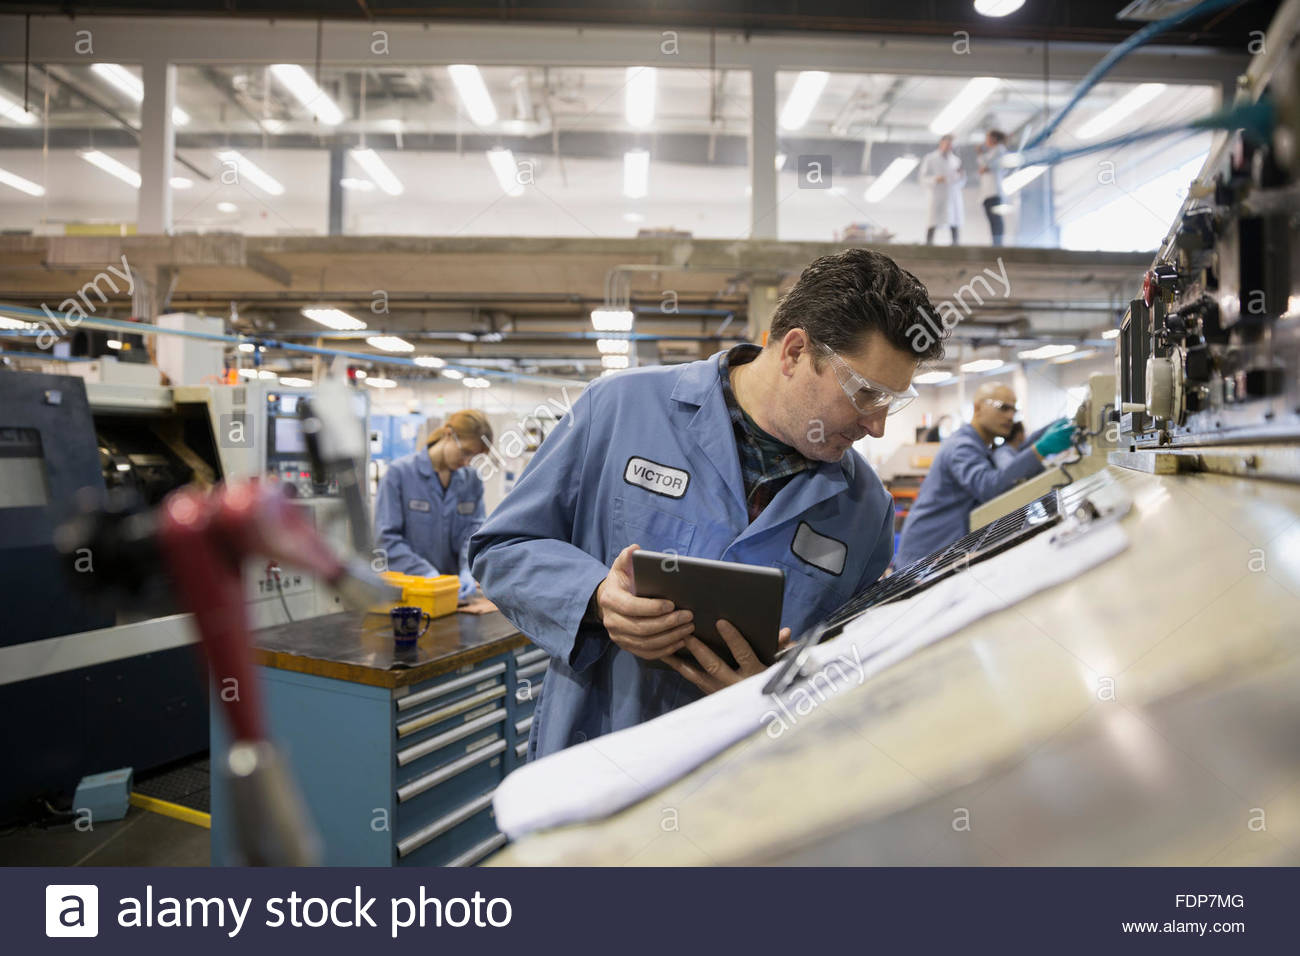 Worker with digital tablet examining machinery in factory - Stock Image